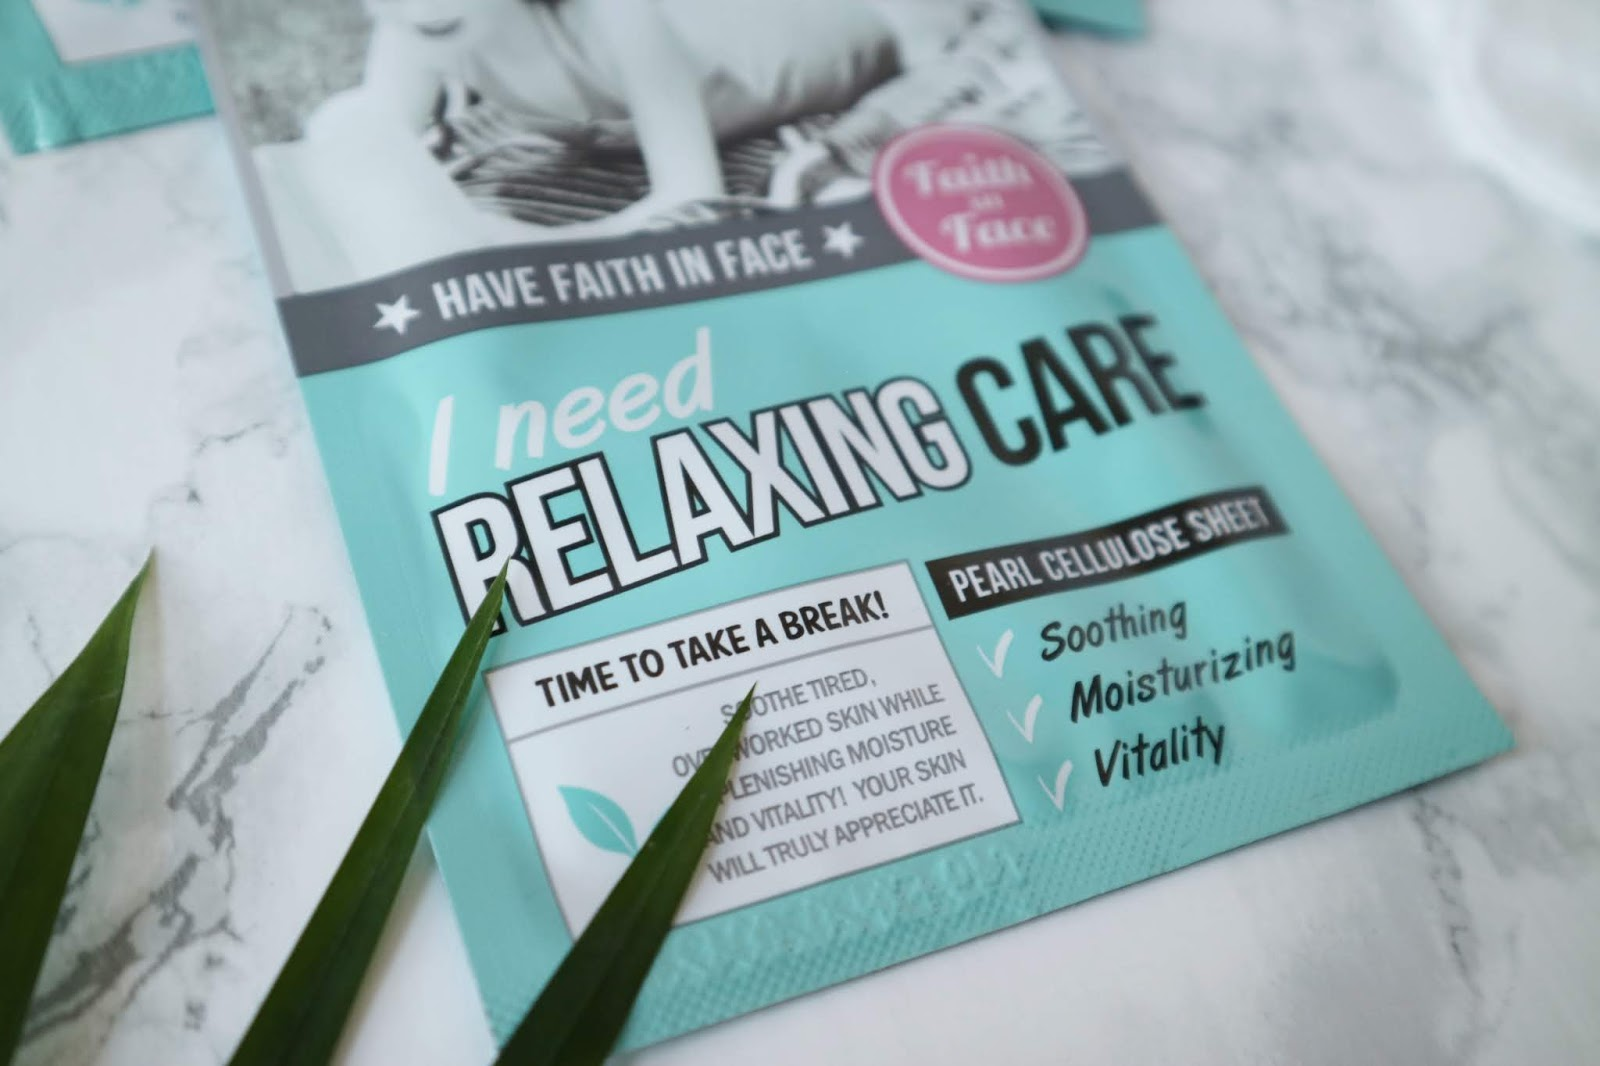 Image result for Faith In Face I Need Relaxing Care